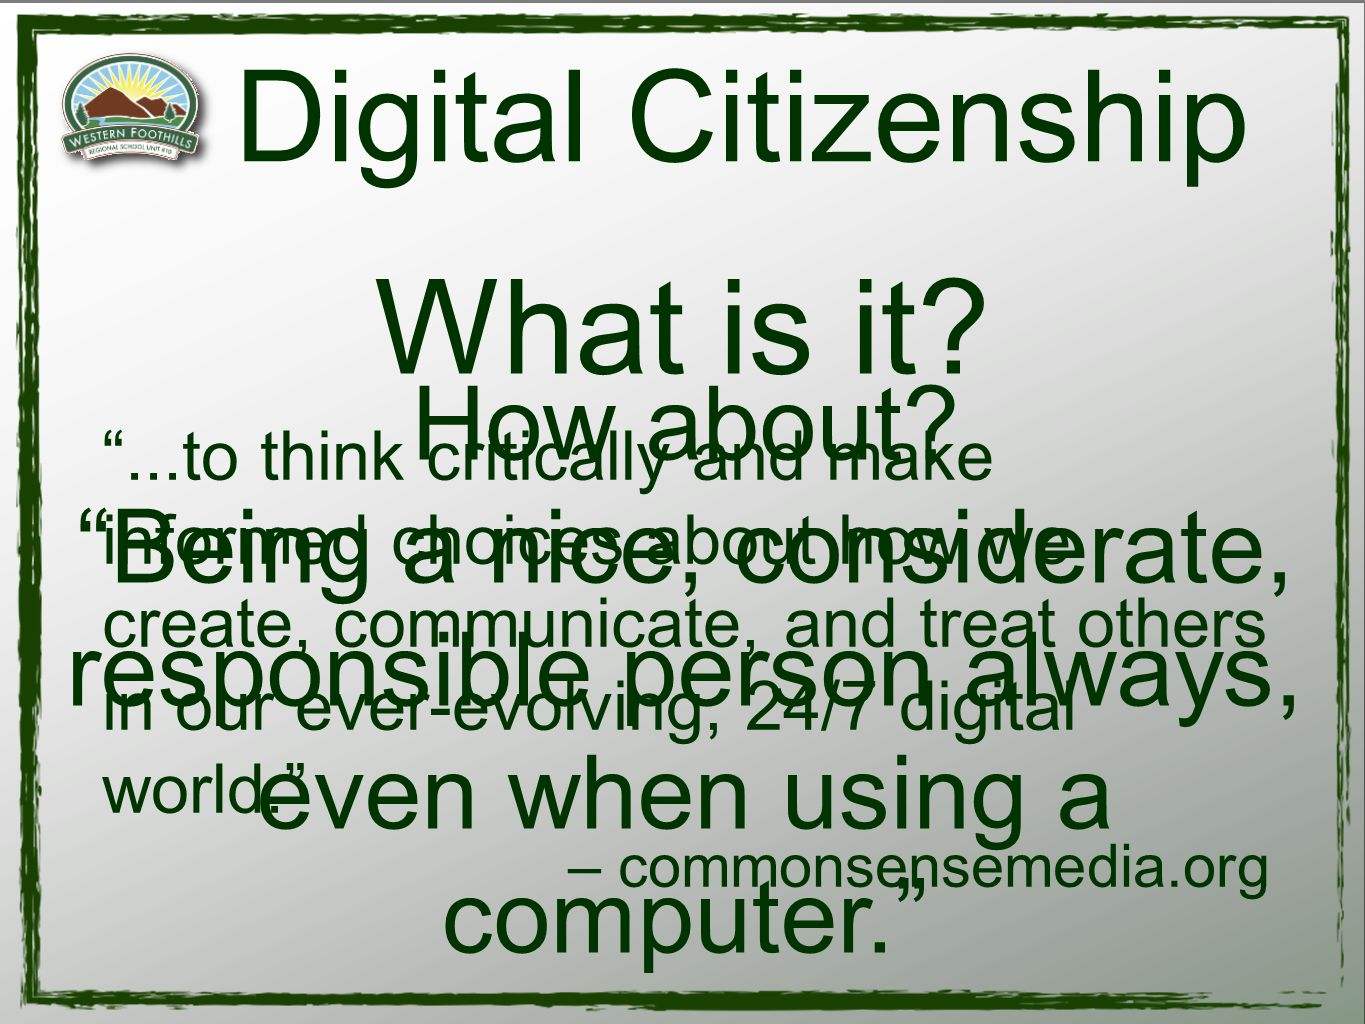 Please help.Today, digital citizenship is everyone's responsibility.